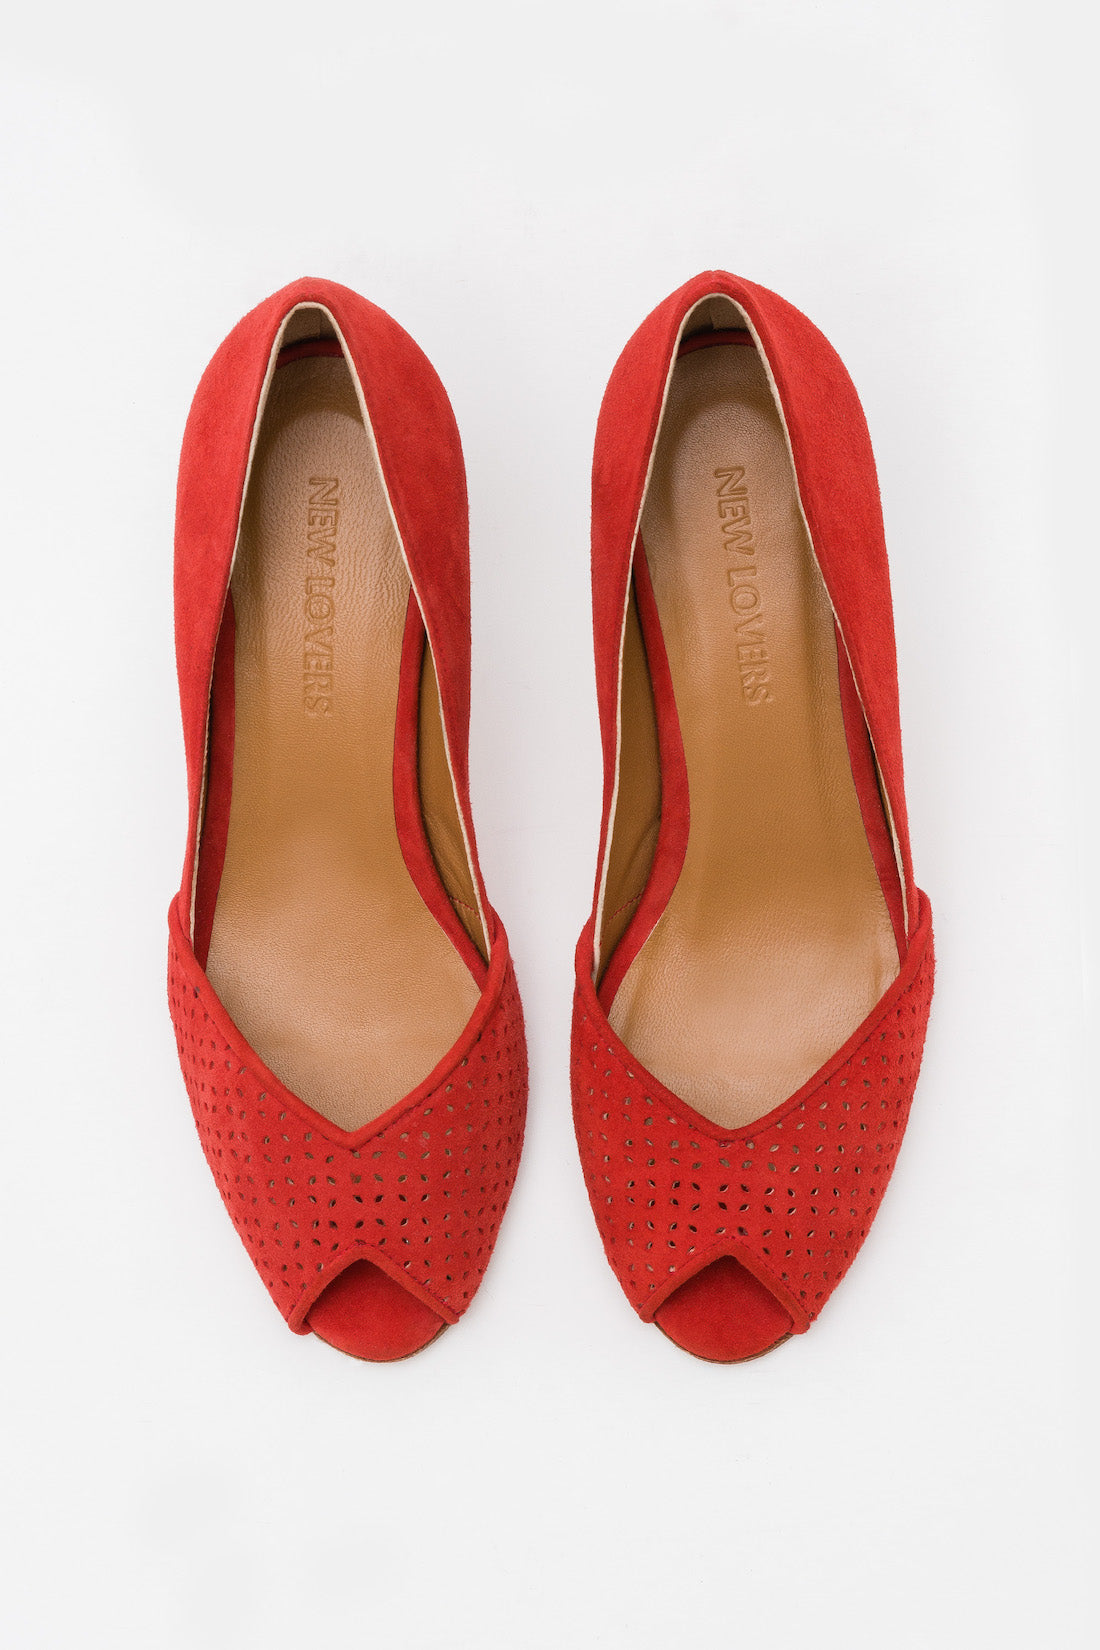 KIKI Peep Toe Suede Red